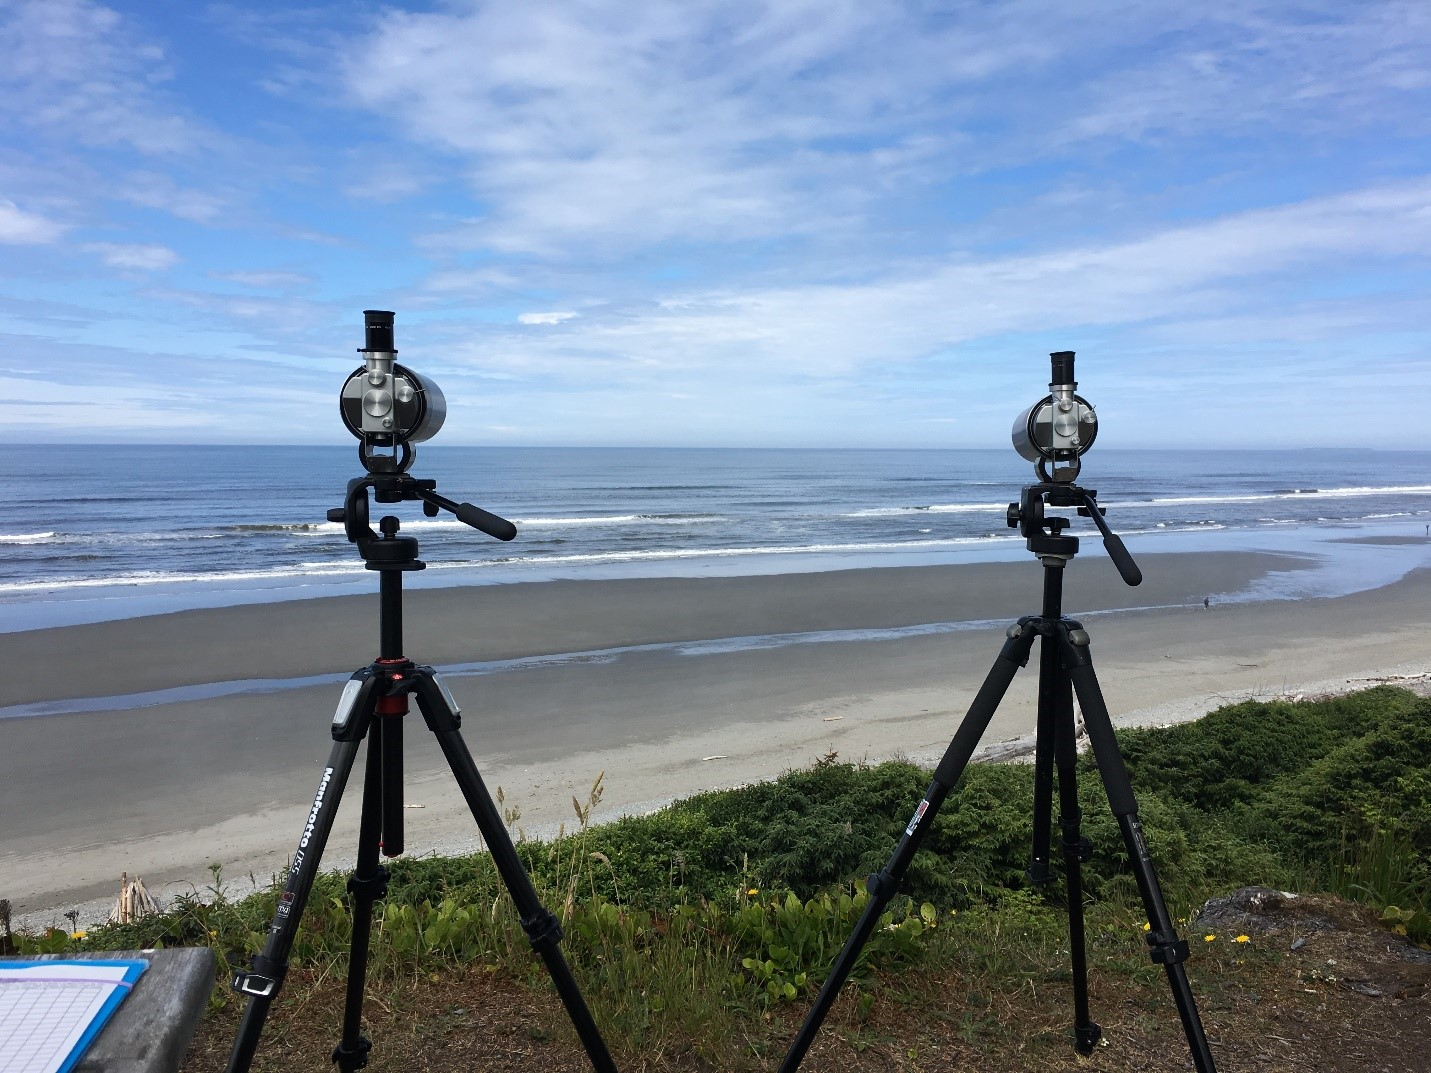 Two scopes set up near a beach